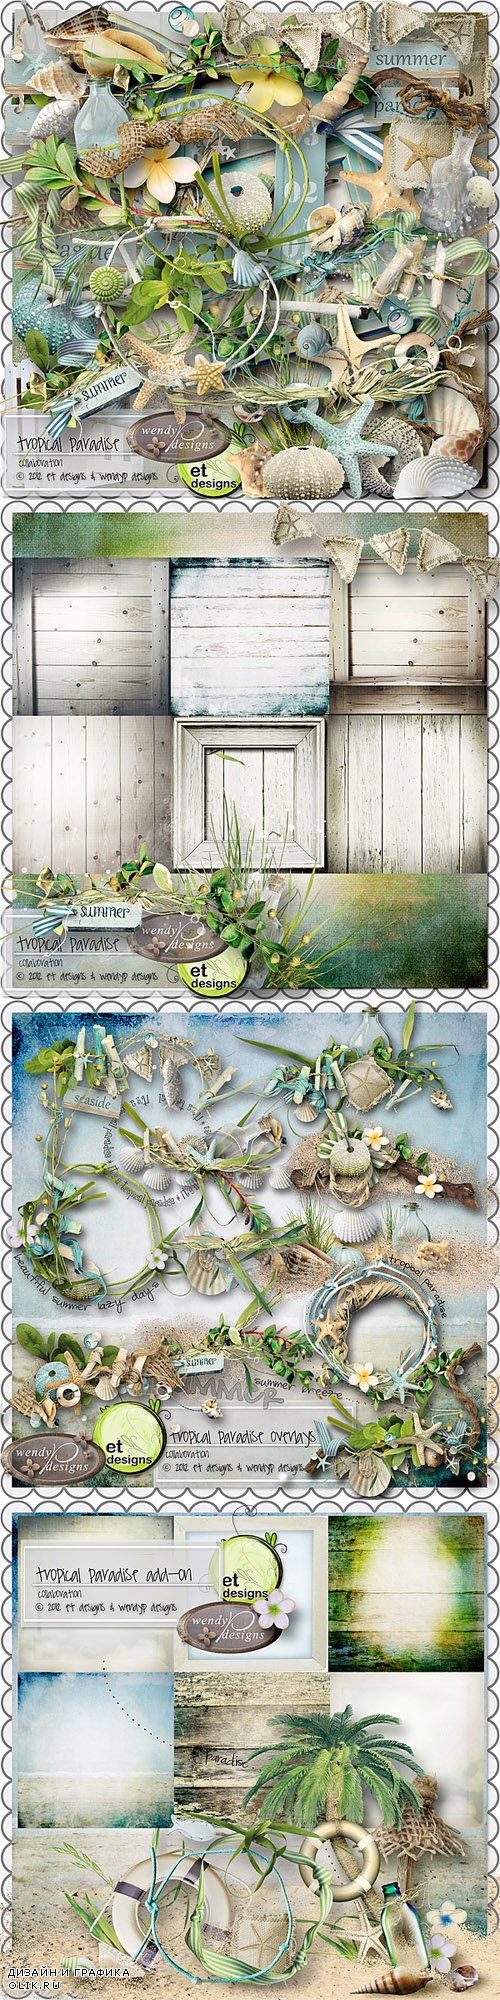 Scrap Kit - Tropical Paradise